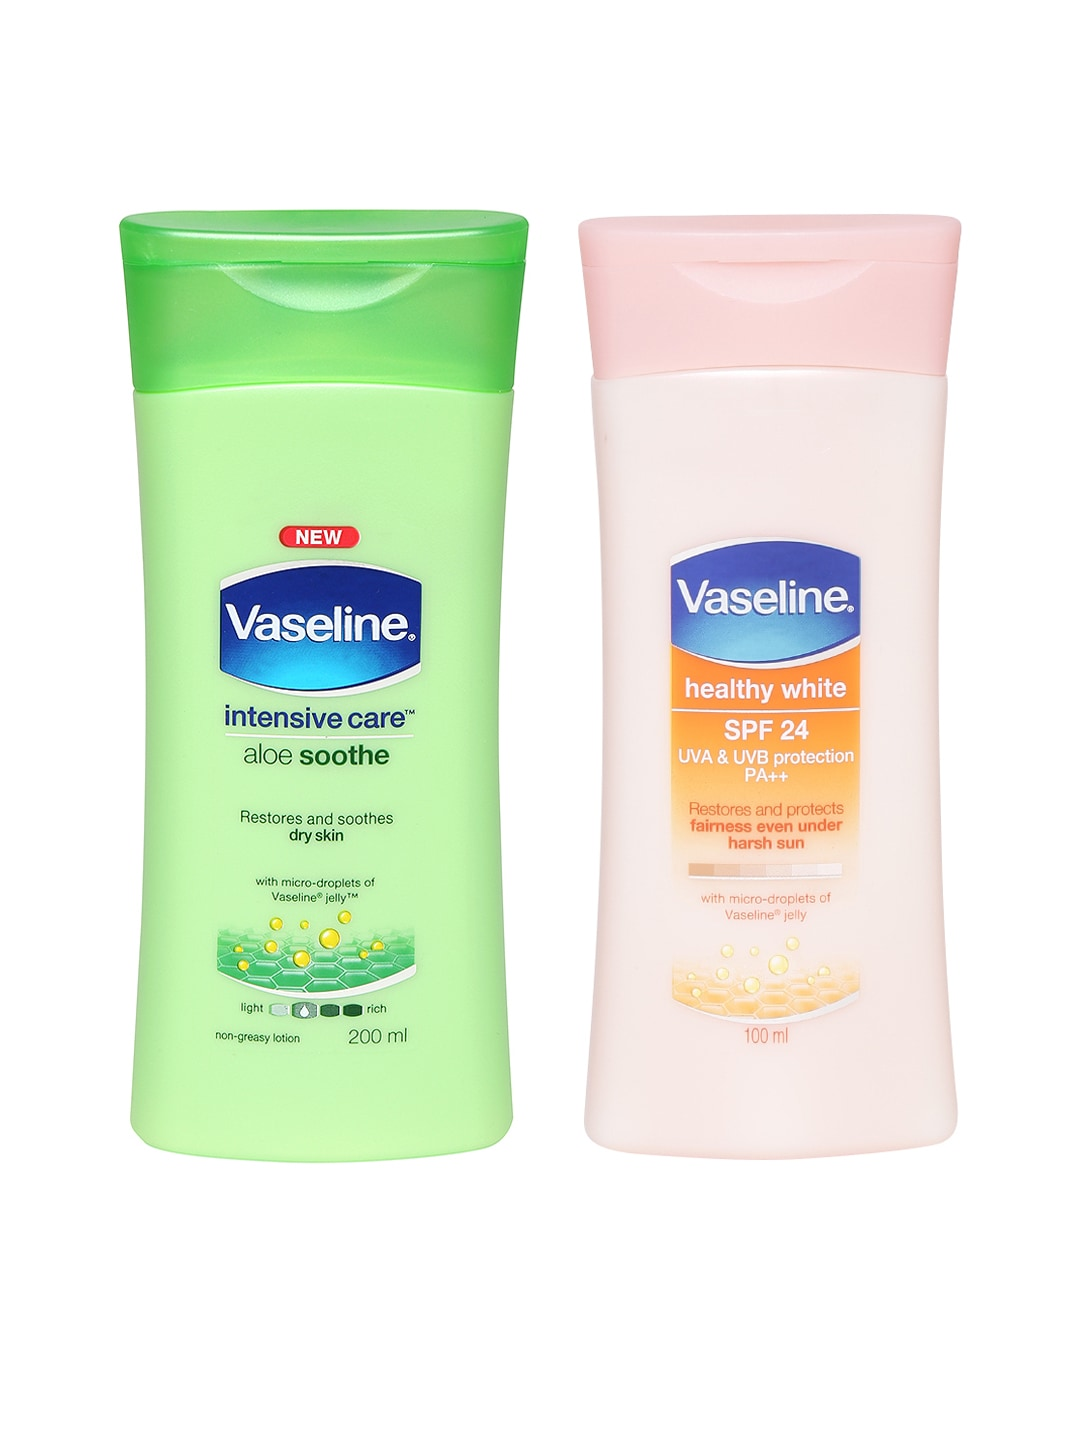 Vaseline Pack of 2 Body Lotions image